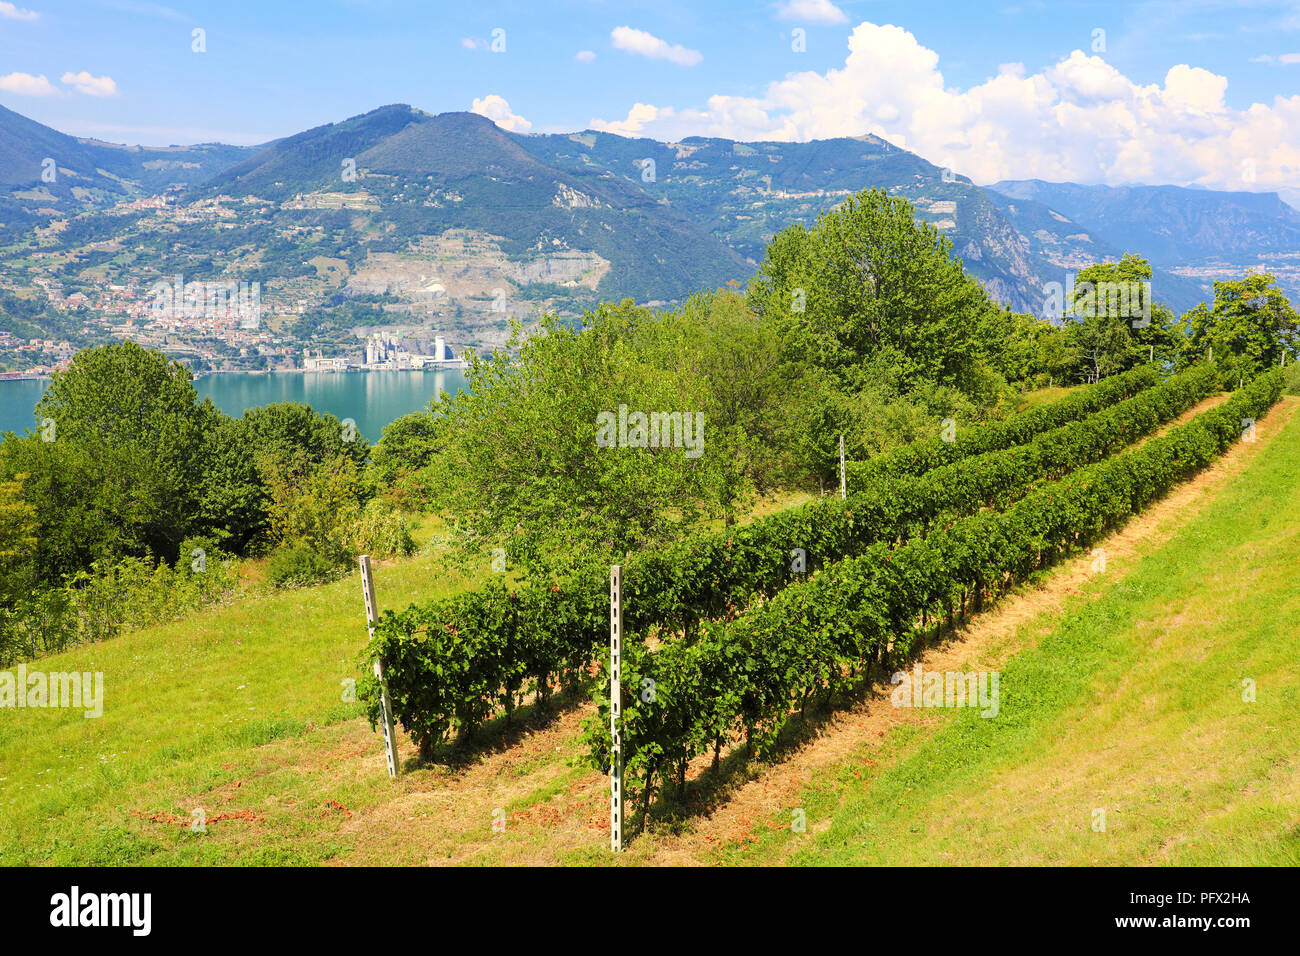 Vineyard on sunny day on lake, Monte Isola, Lombardy, Italy - Stock Image